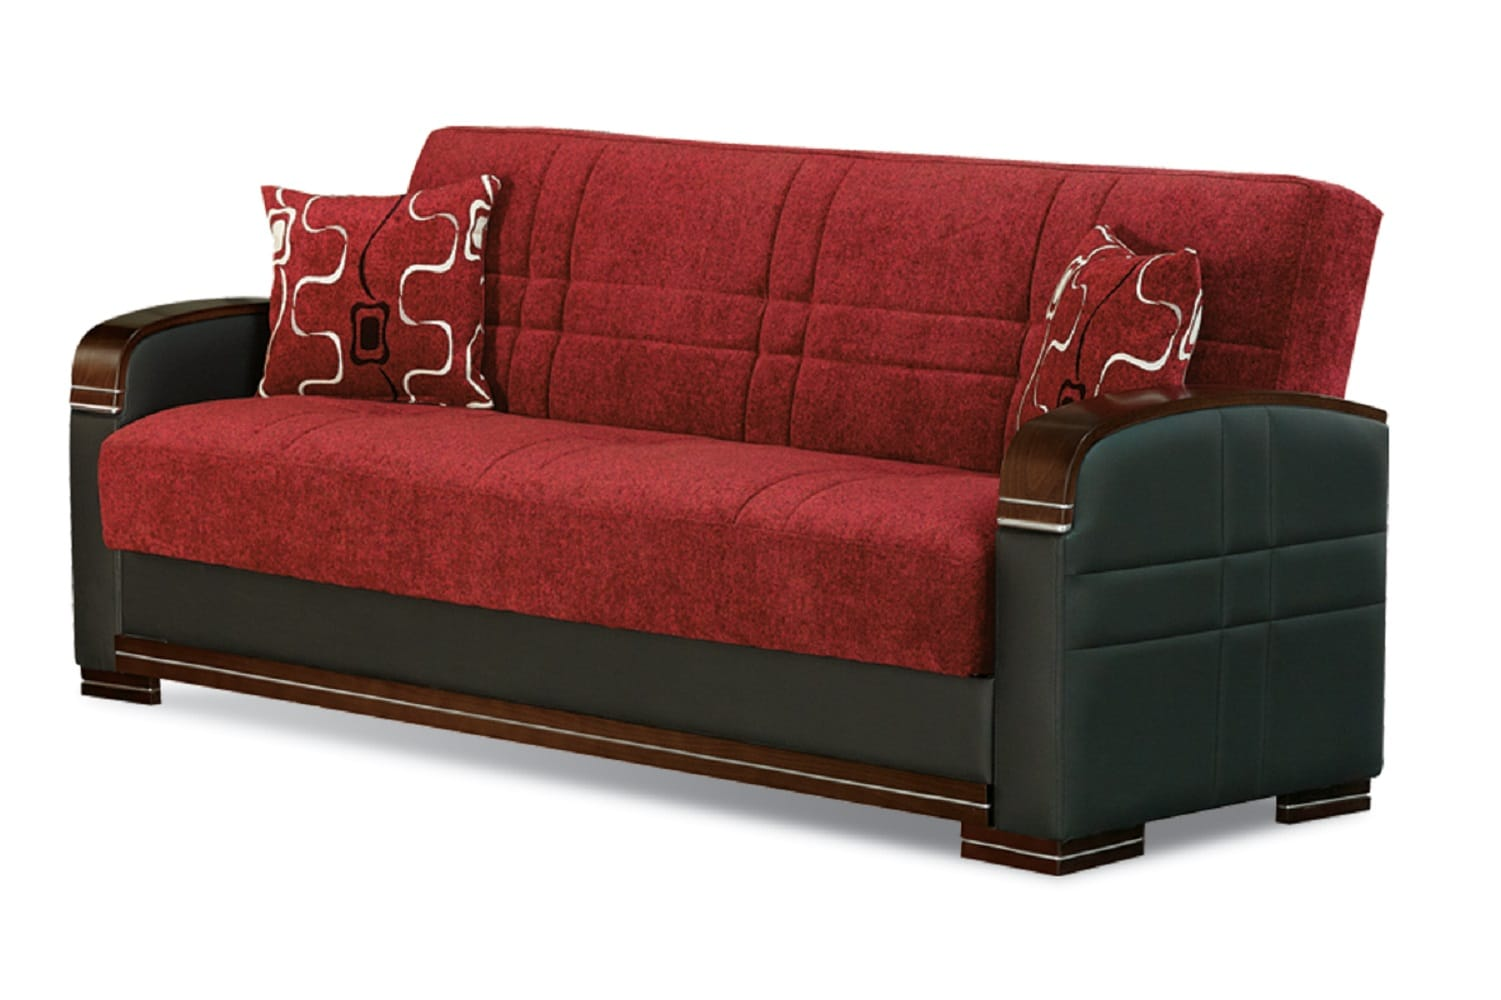 Indiana Red Fabric Sofa Bed By Empire Furniture Usa